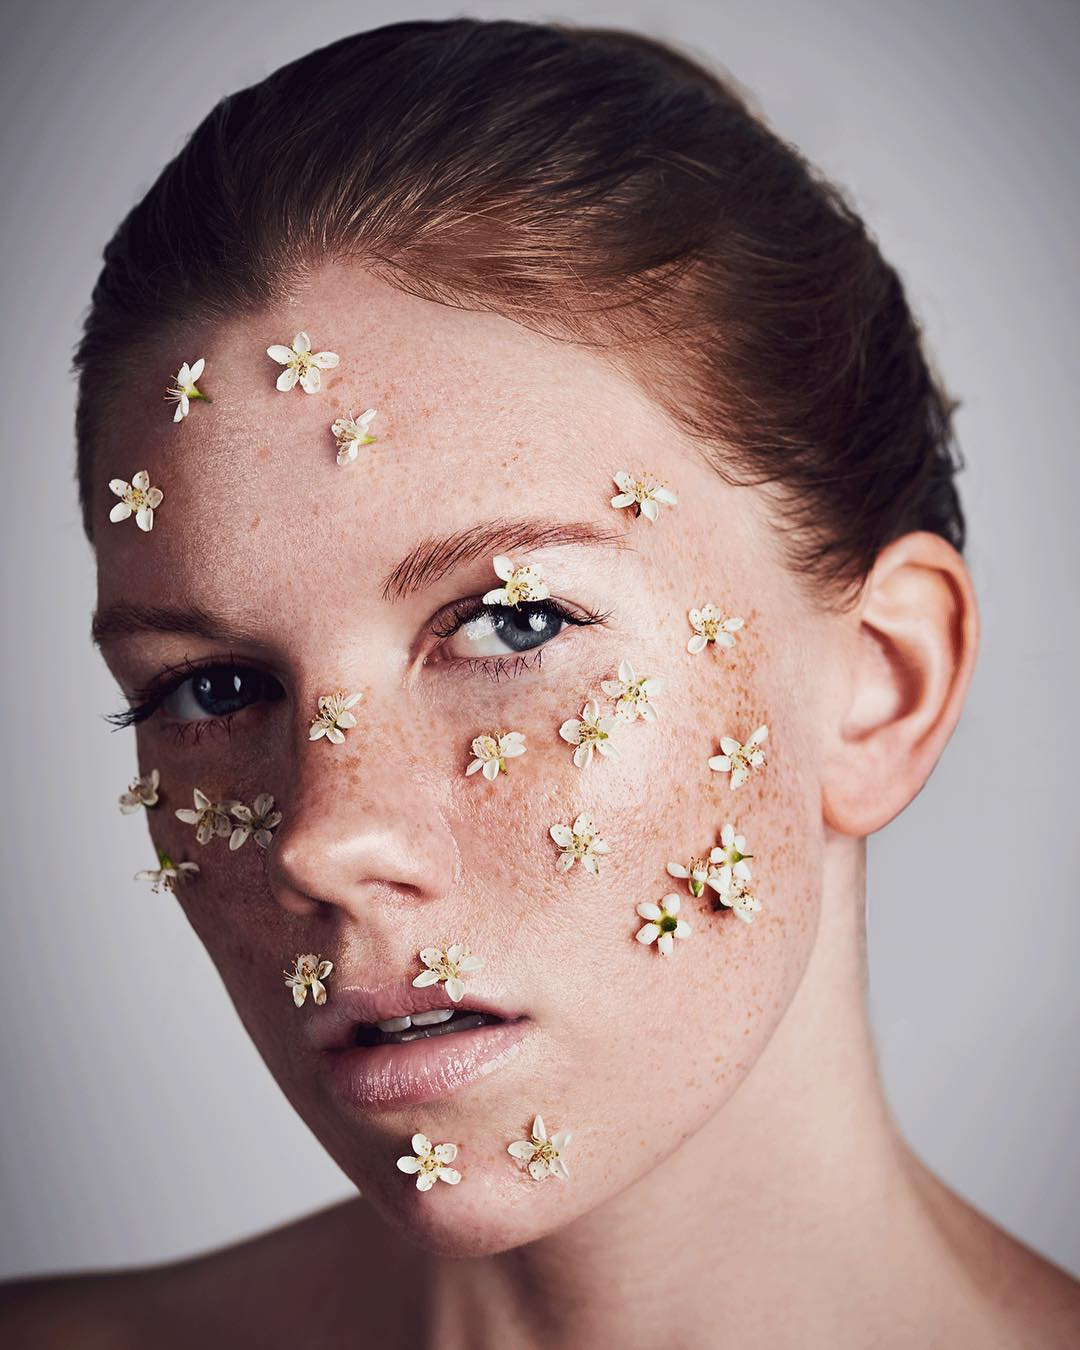 Marvelous Beauty Portrait Photography by Eric Hückstädt